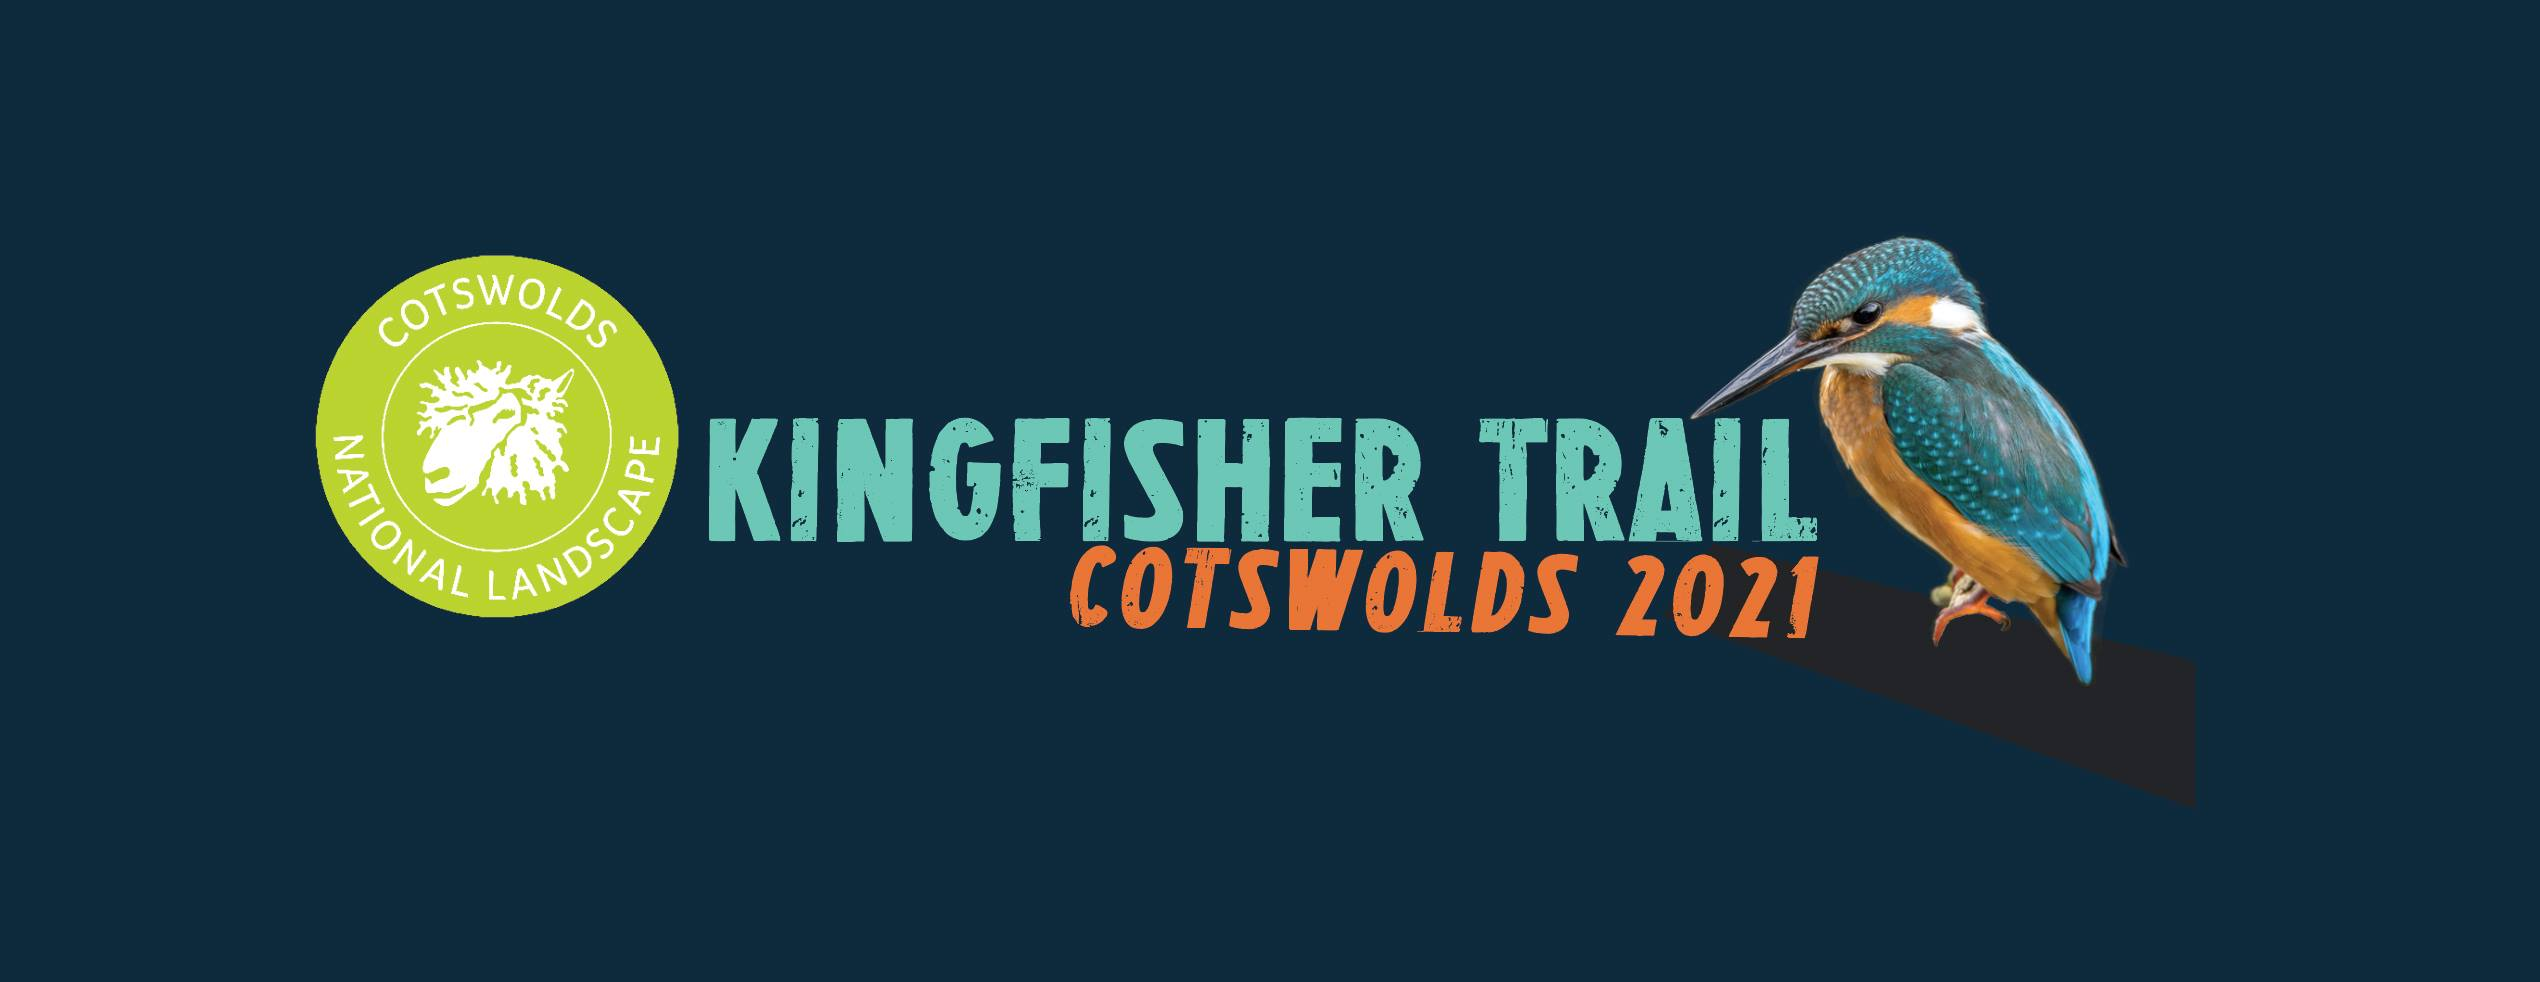 kingfisher trail gloucestershire, kingfisher trail cotswold, 2021 events cotswolds